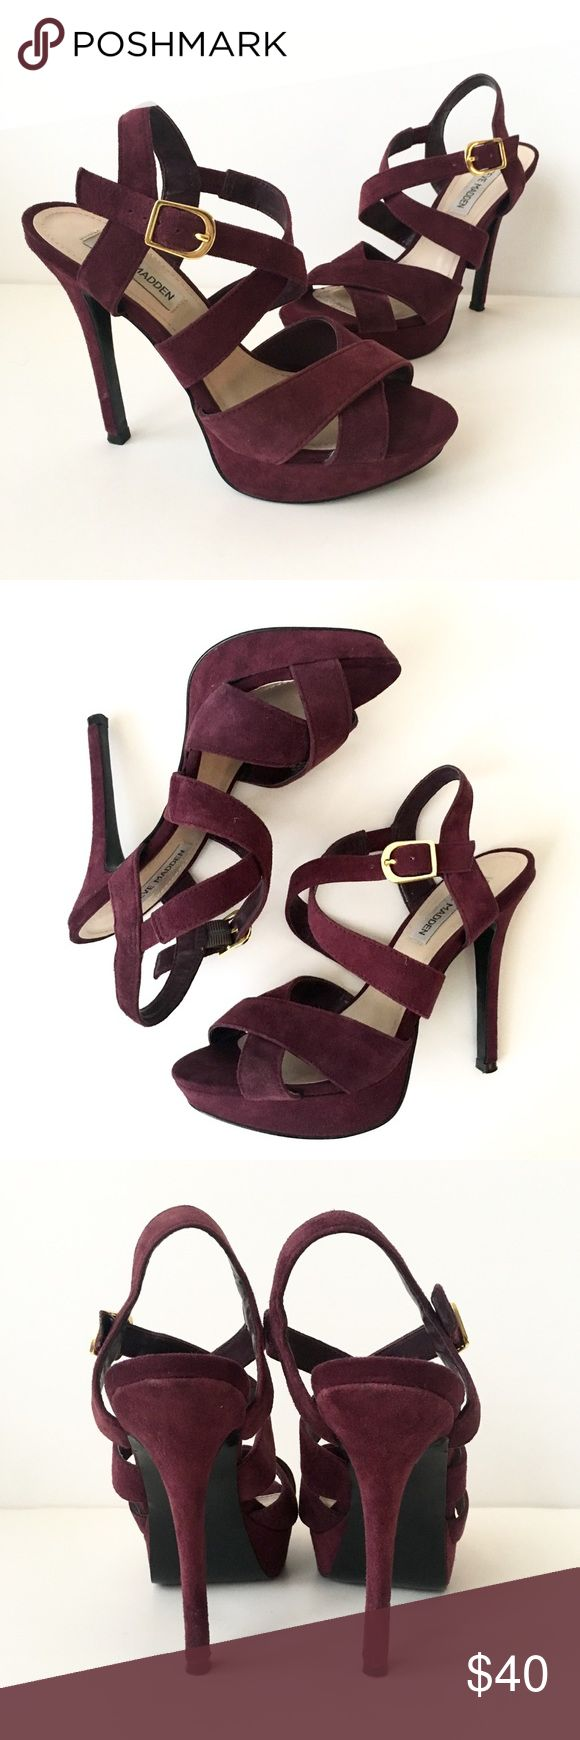 """Steve Madden Burgundy Suede Tarrah Heel Stiletto sandal. Strap and buckle closure. In good condition, please inspect photos carefully for all sighs of wear. Burgundy/maroon color.  Will fit 7-7.5. I am normally a 6.5/7 and these fit but just a little too big for me.   Heel height: approx 5"""" Platform height: almost 1""""  Open to offers or bundle for a private discount! Steve Madden Shoes Heels"""